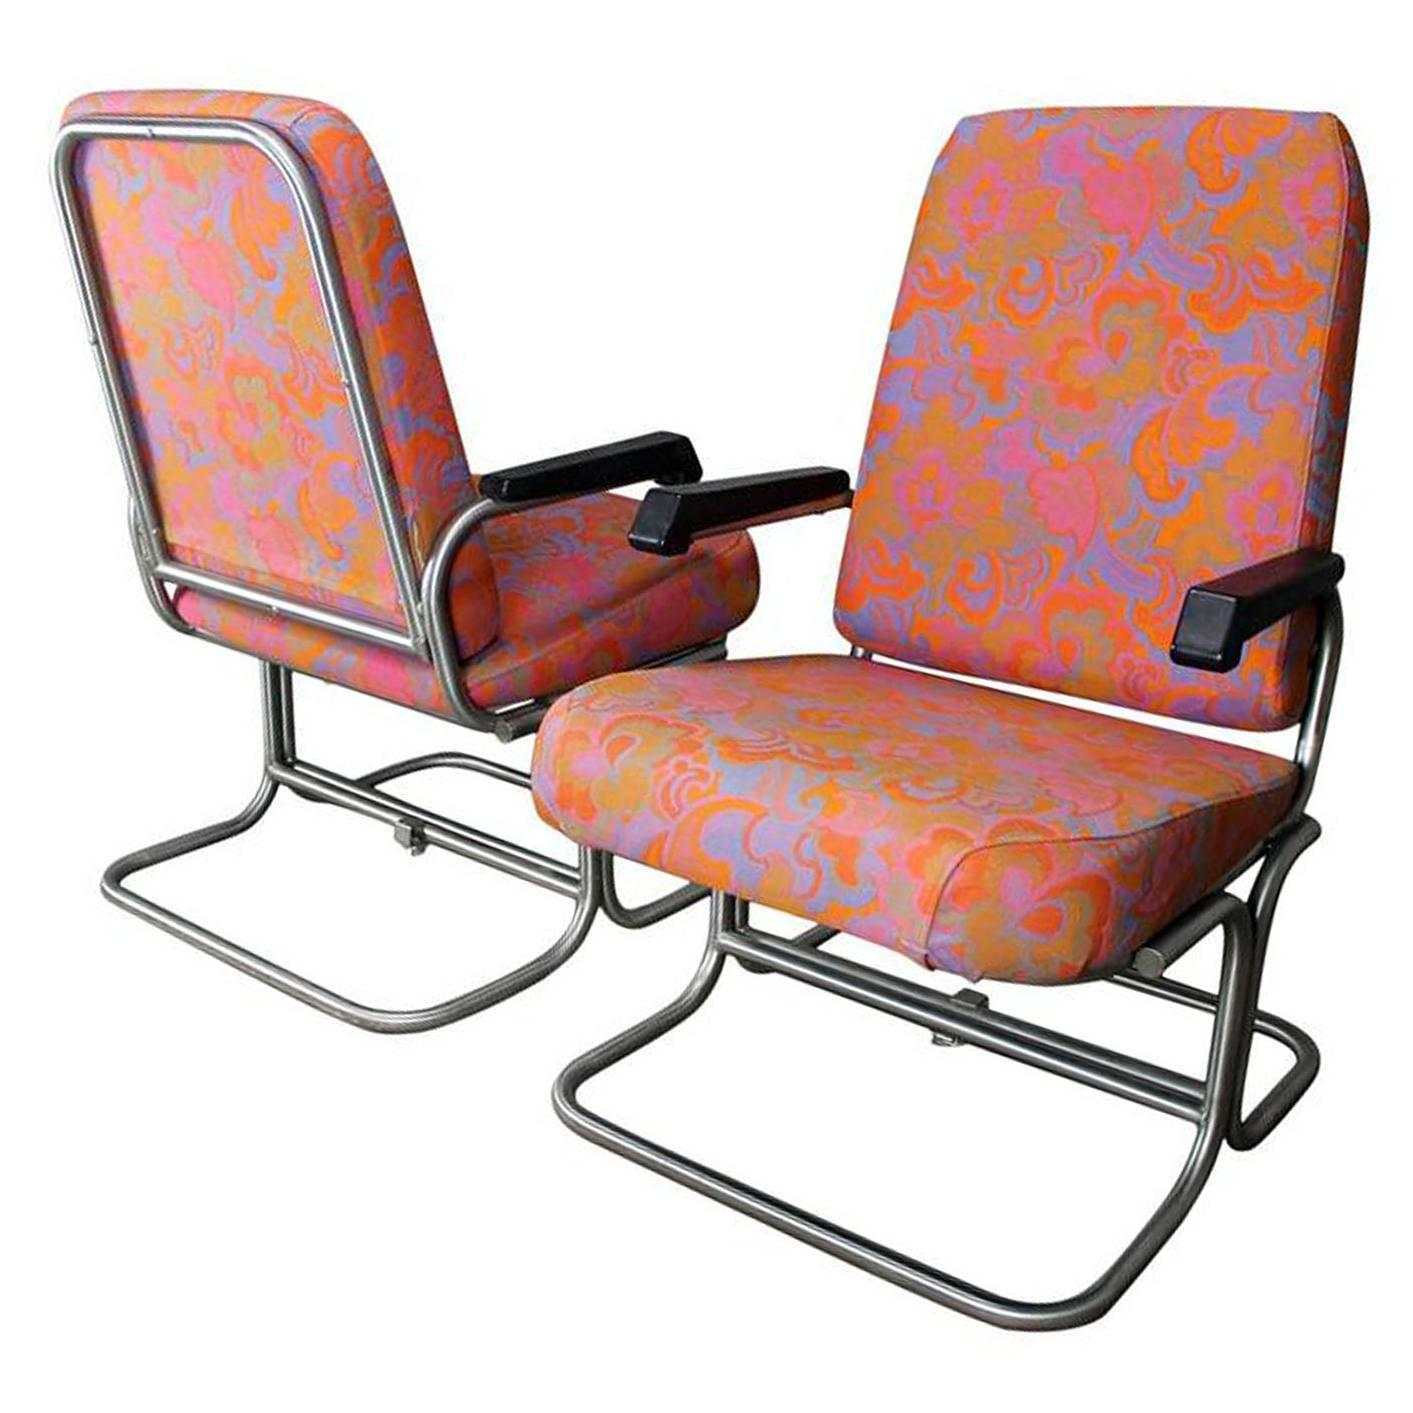 aluminum pullman passenger train railroad lounge chair saturday